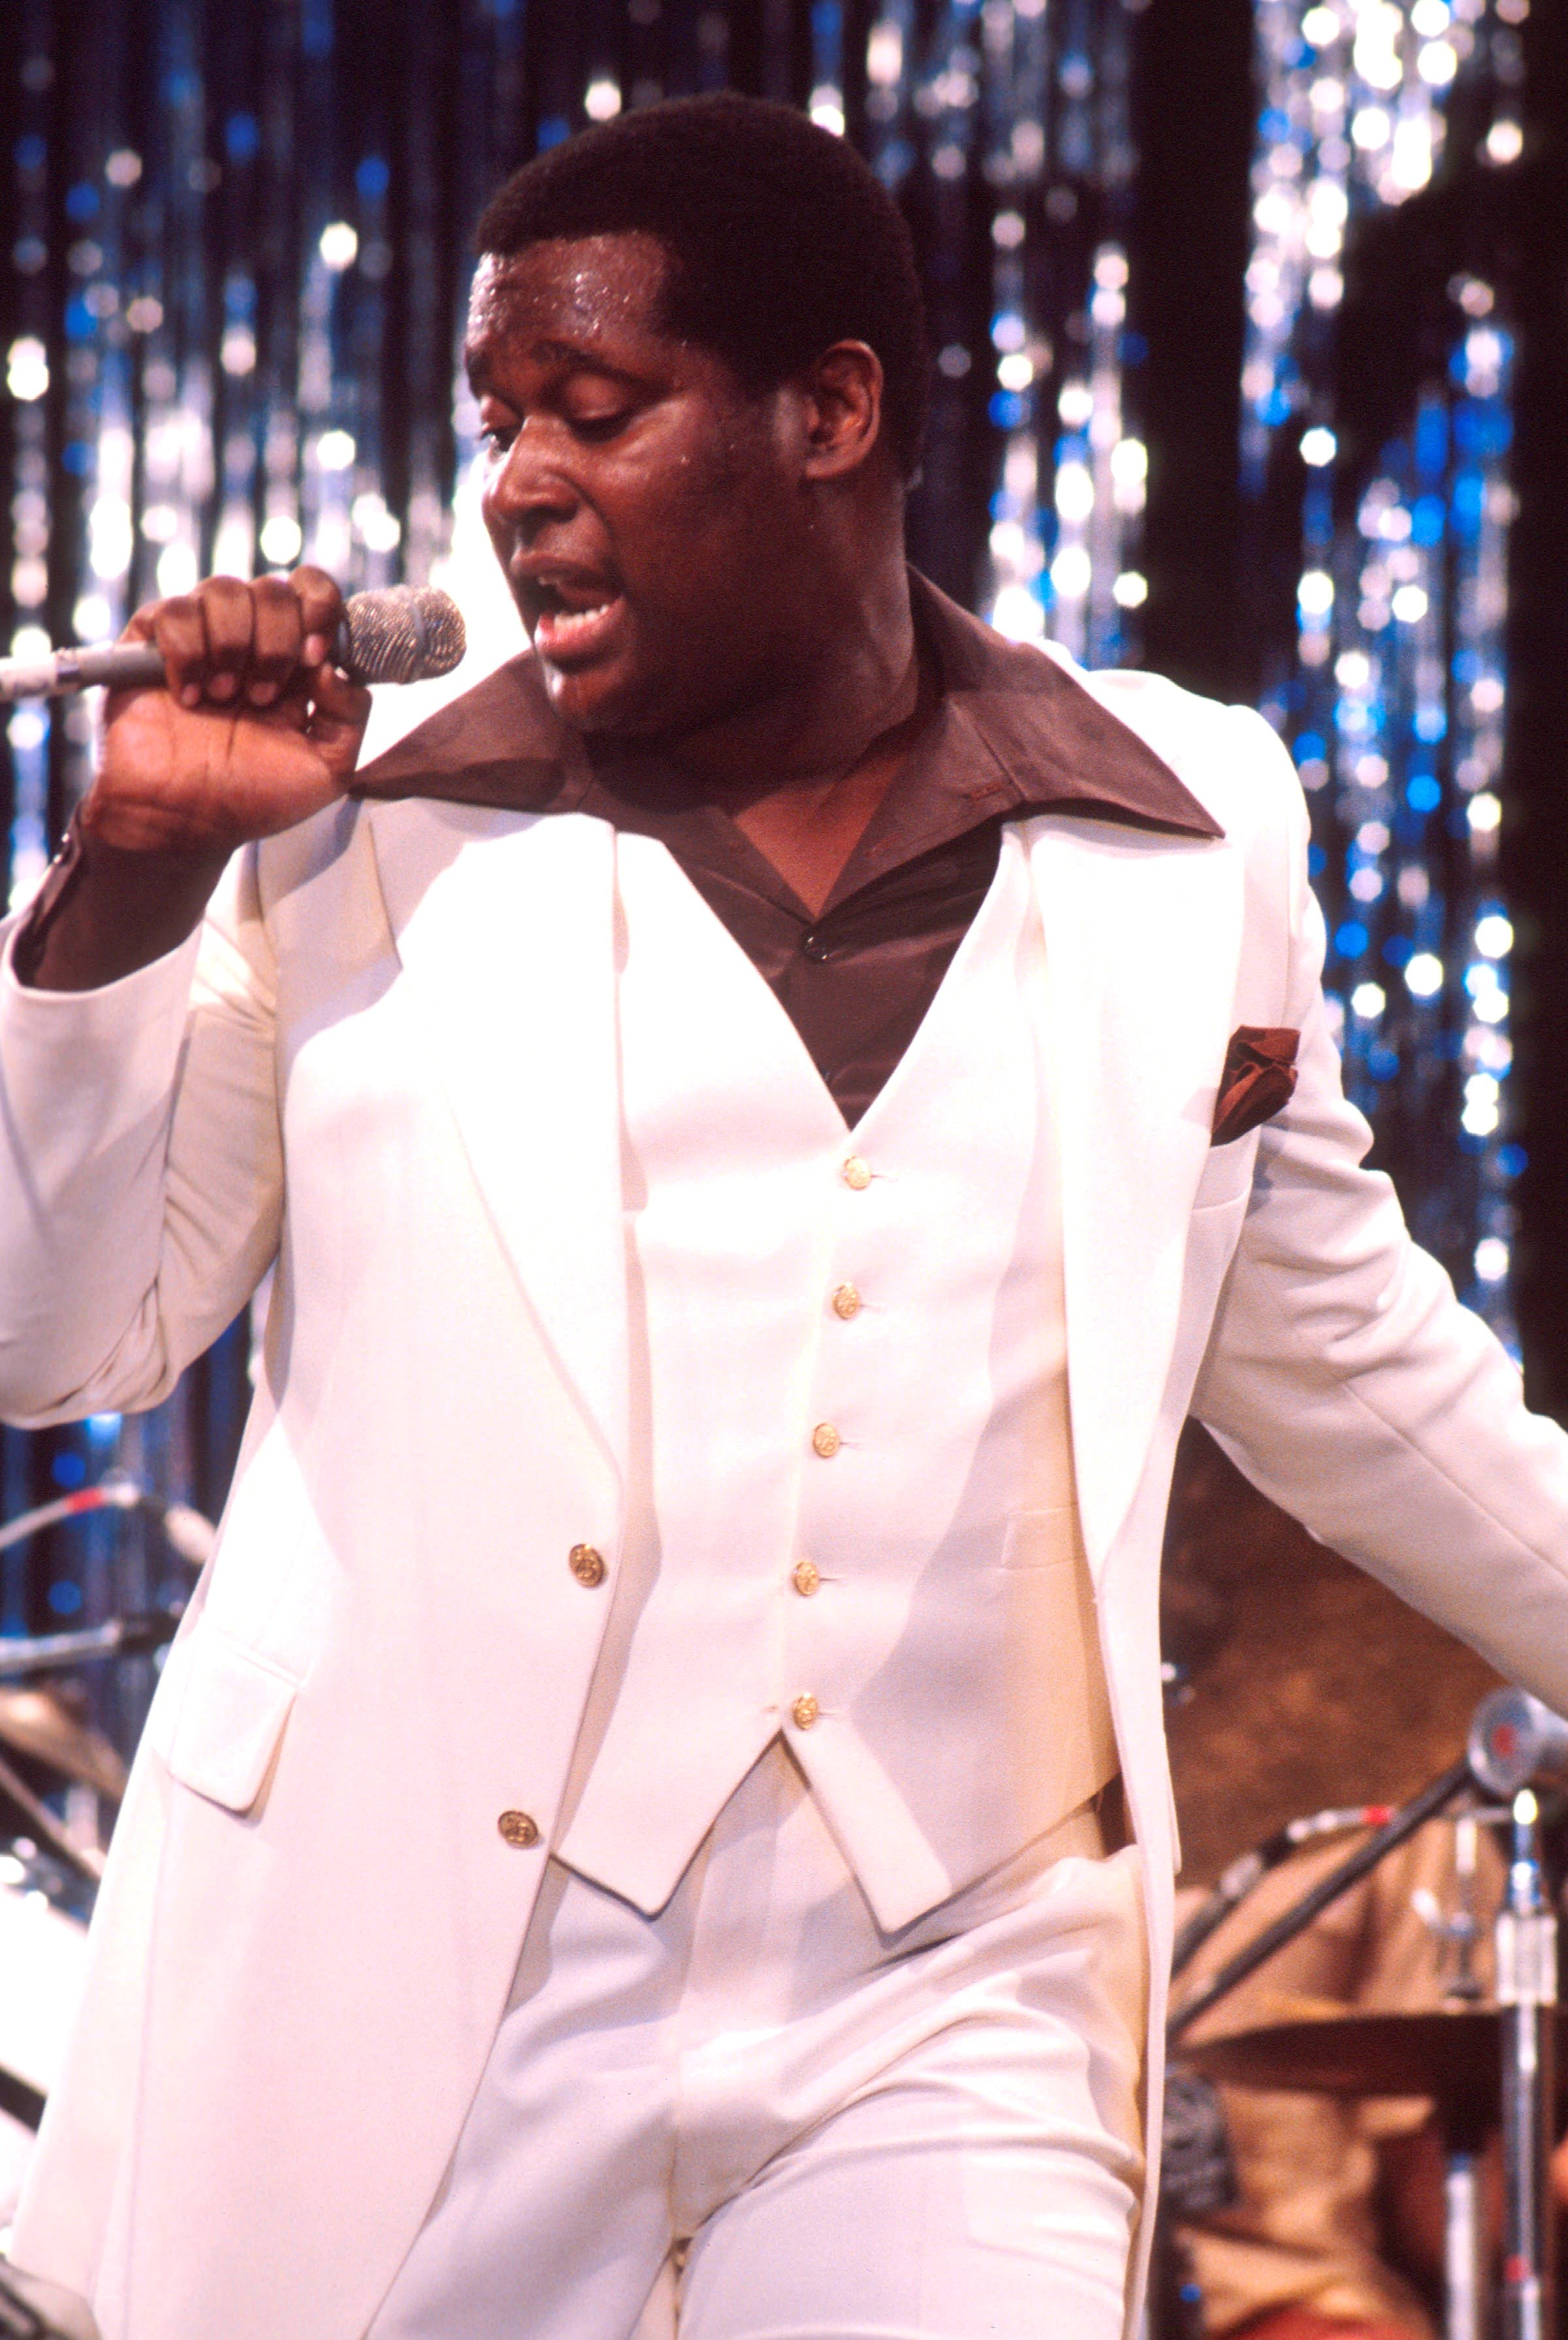 Luther Vandross performs on stage at Montreux Jazz Festival in 1977. |Photo: Getty Images